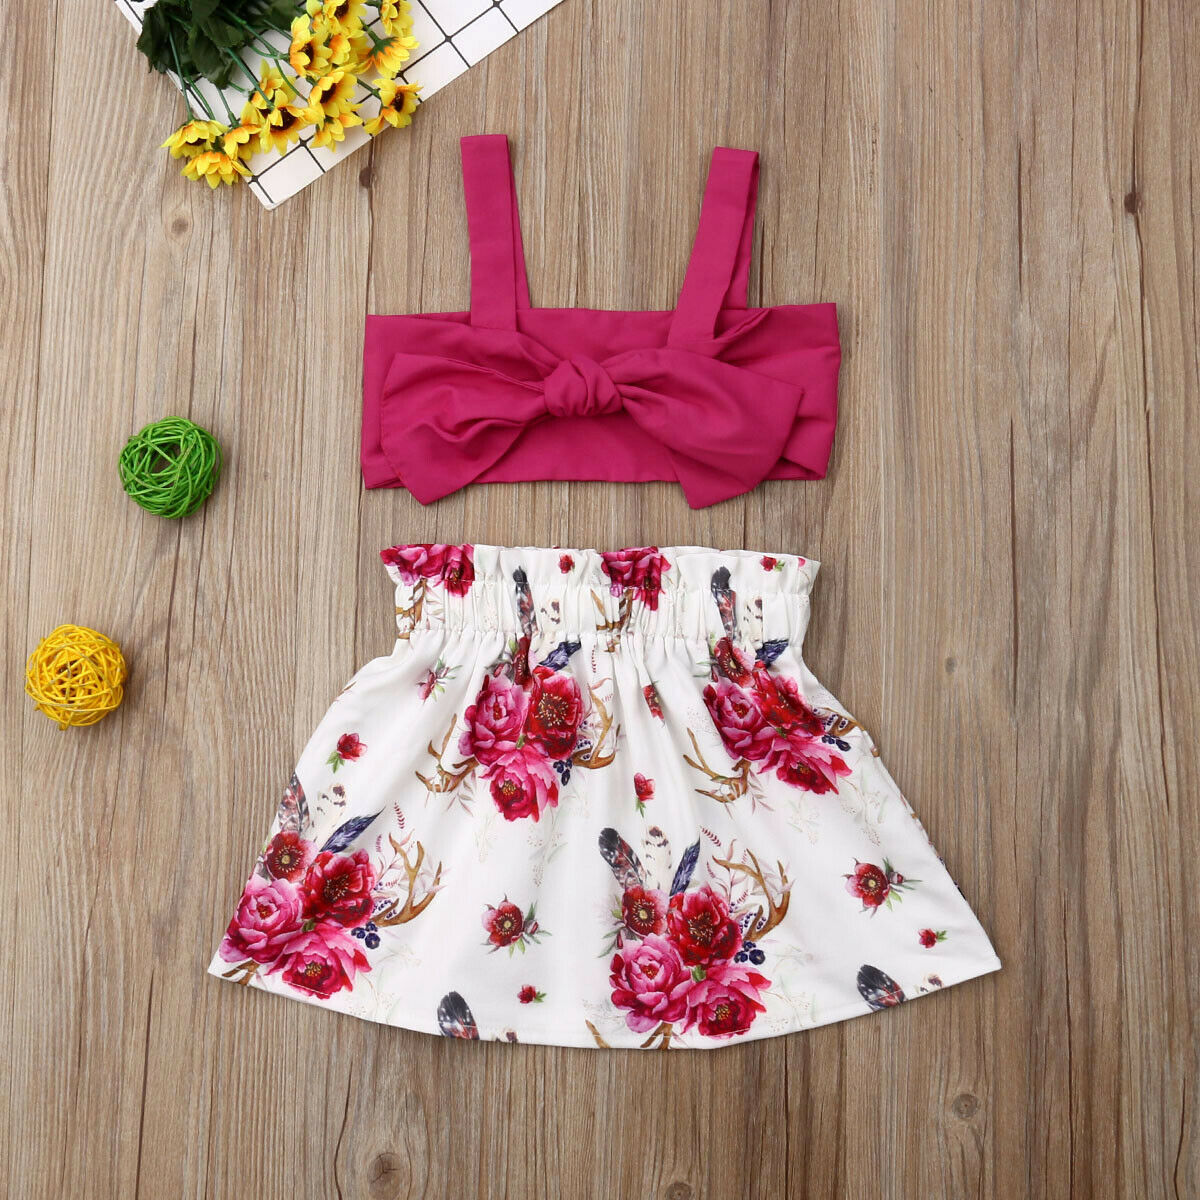 UK 2PCS Toddler Kids Baby Girl Summer Floral Tops Ruffle Dress Outfits Sunsuit